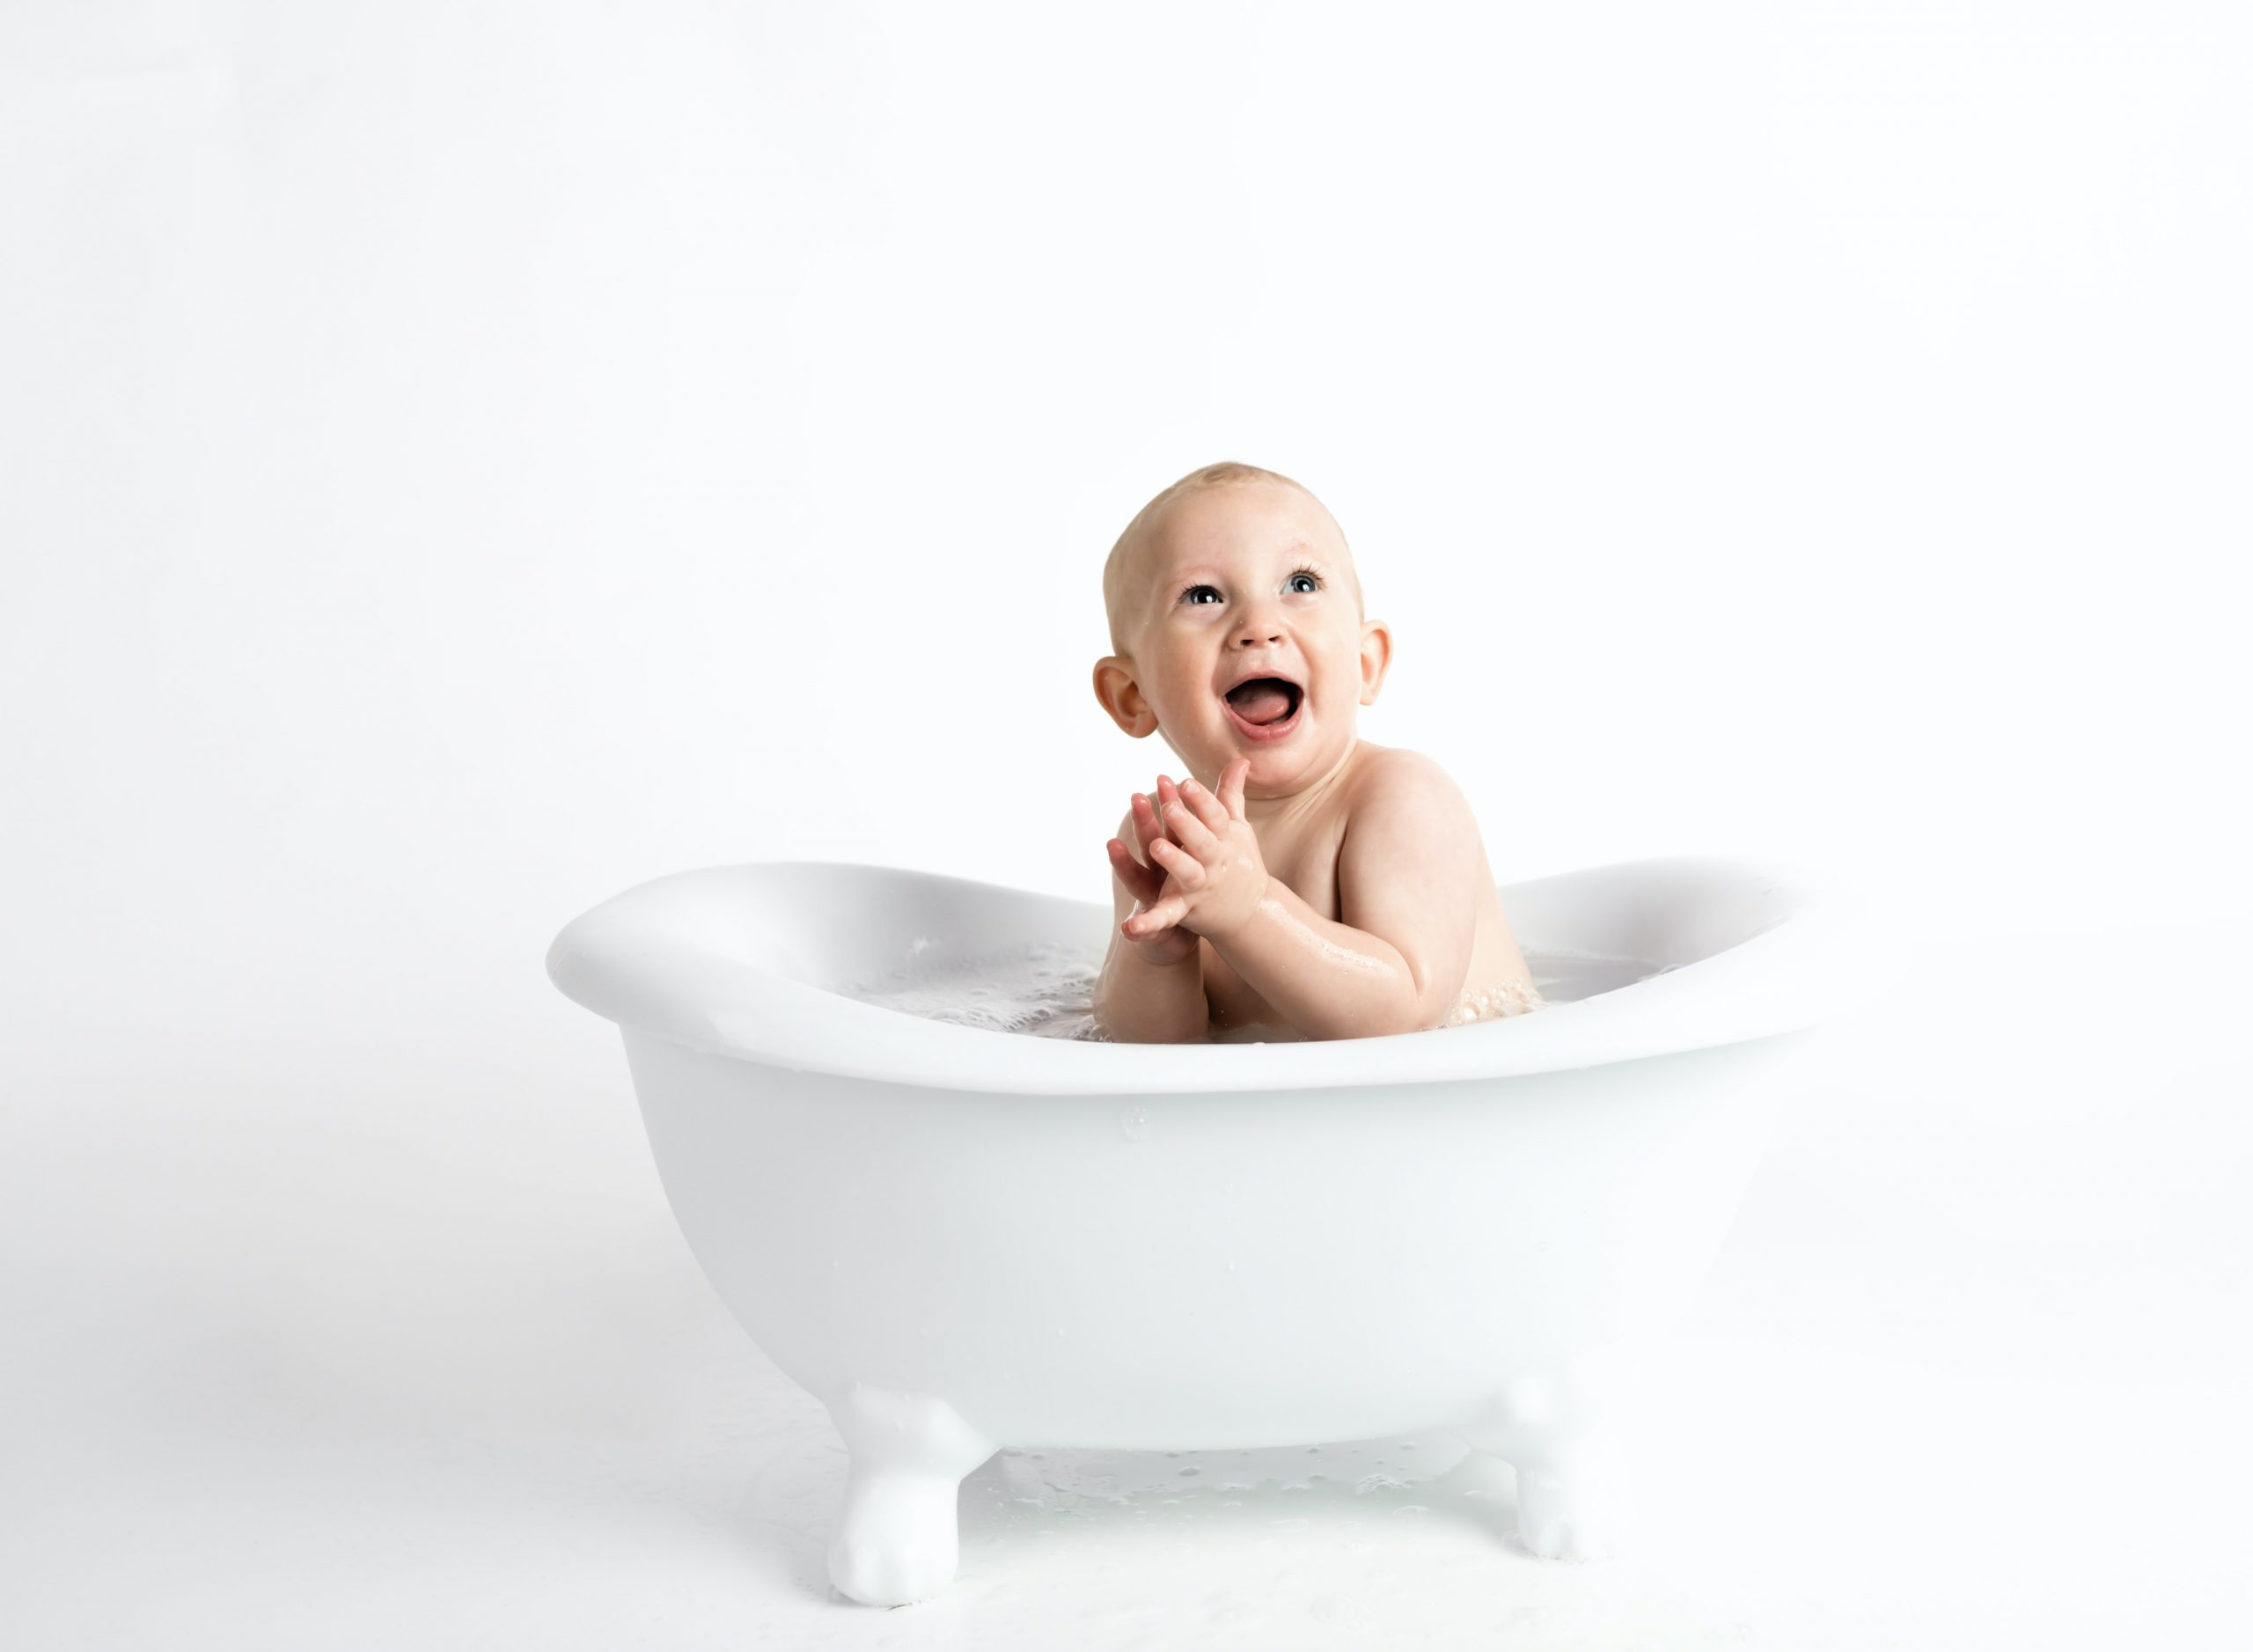 How To Take A Bath With A Newborn Baby